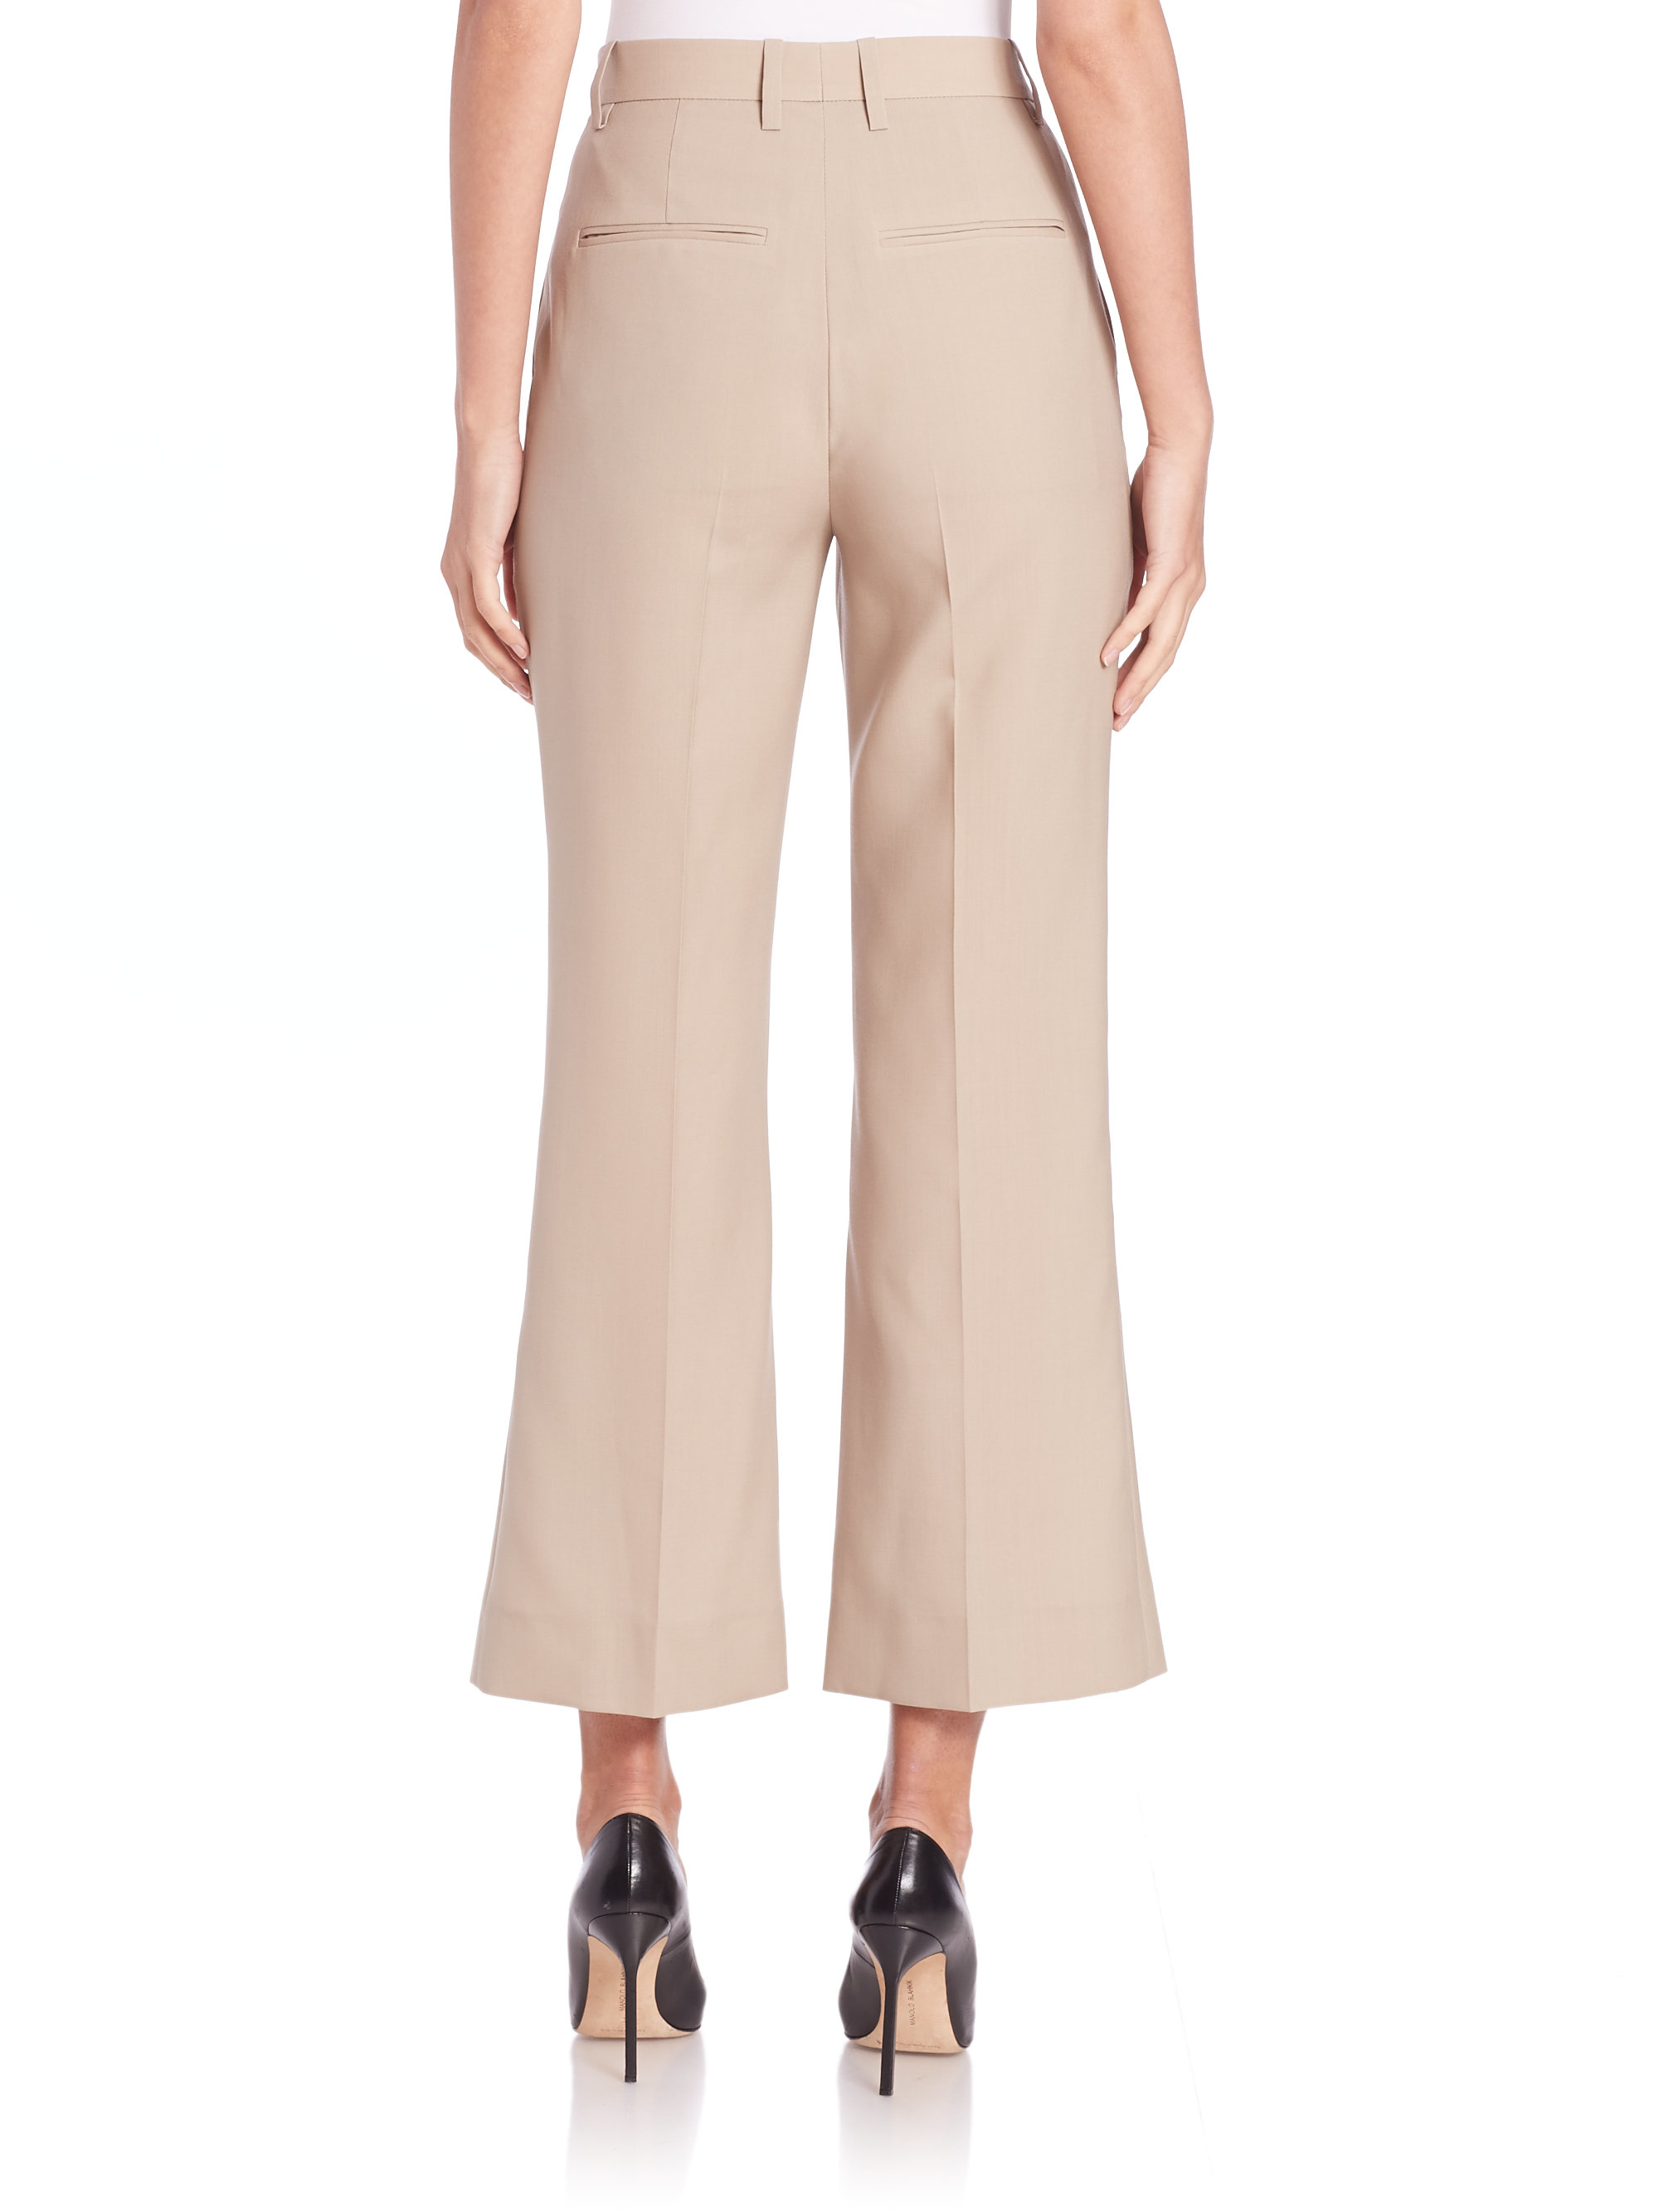 With Paypal Online 2018 Cheap Price Light wool classic pants Nina Ricci 100% Original MXDl69R